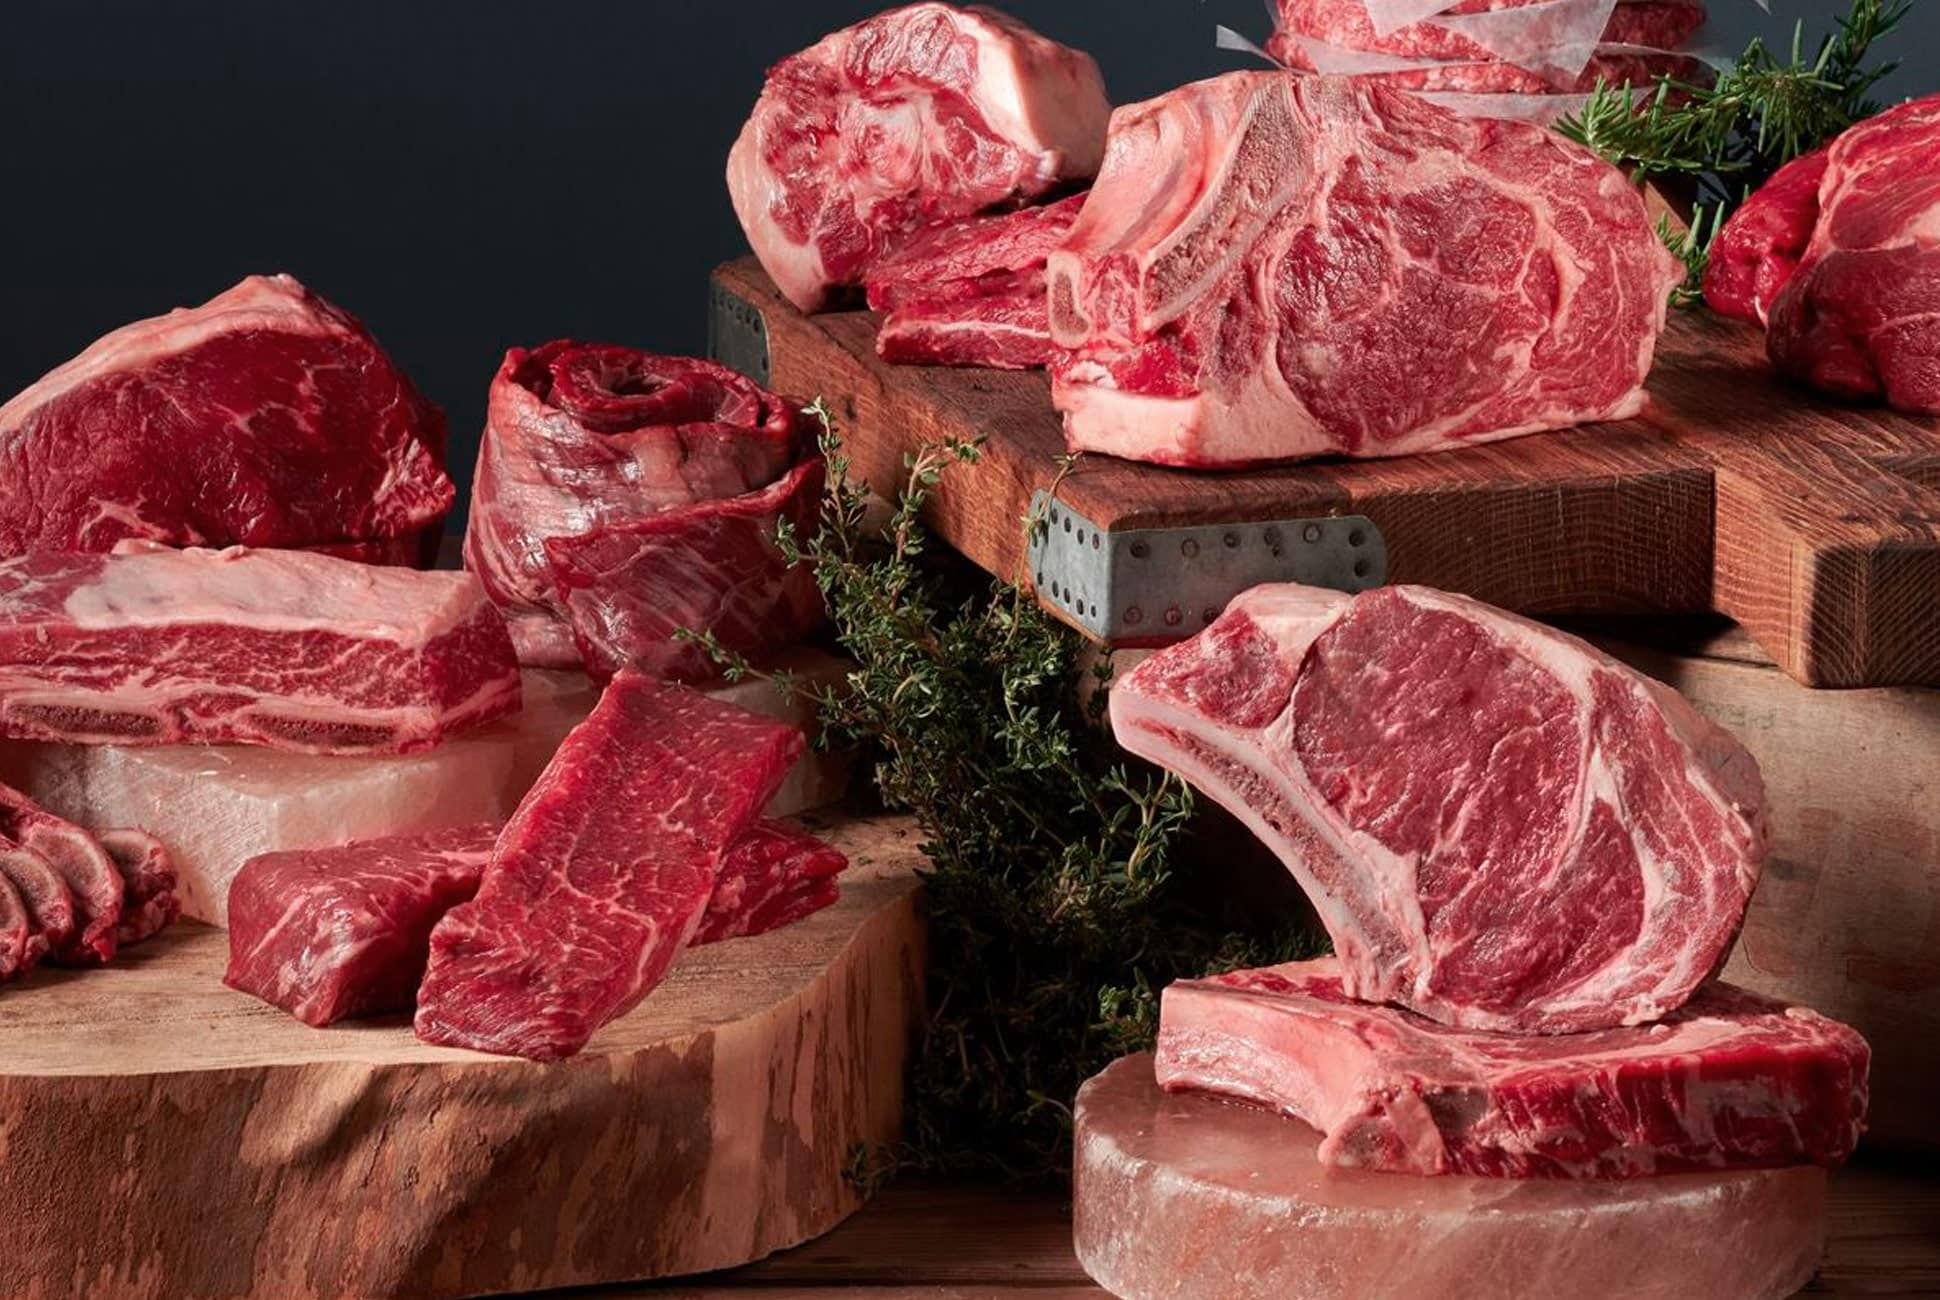 The 15 Best Meat Companies To Have Steak Pork Chicken And More Delivered To Your Door Meat Food Styling Meat Online Meat Shop